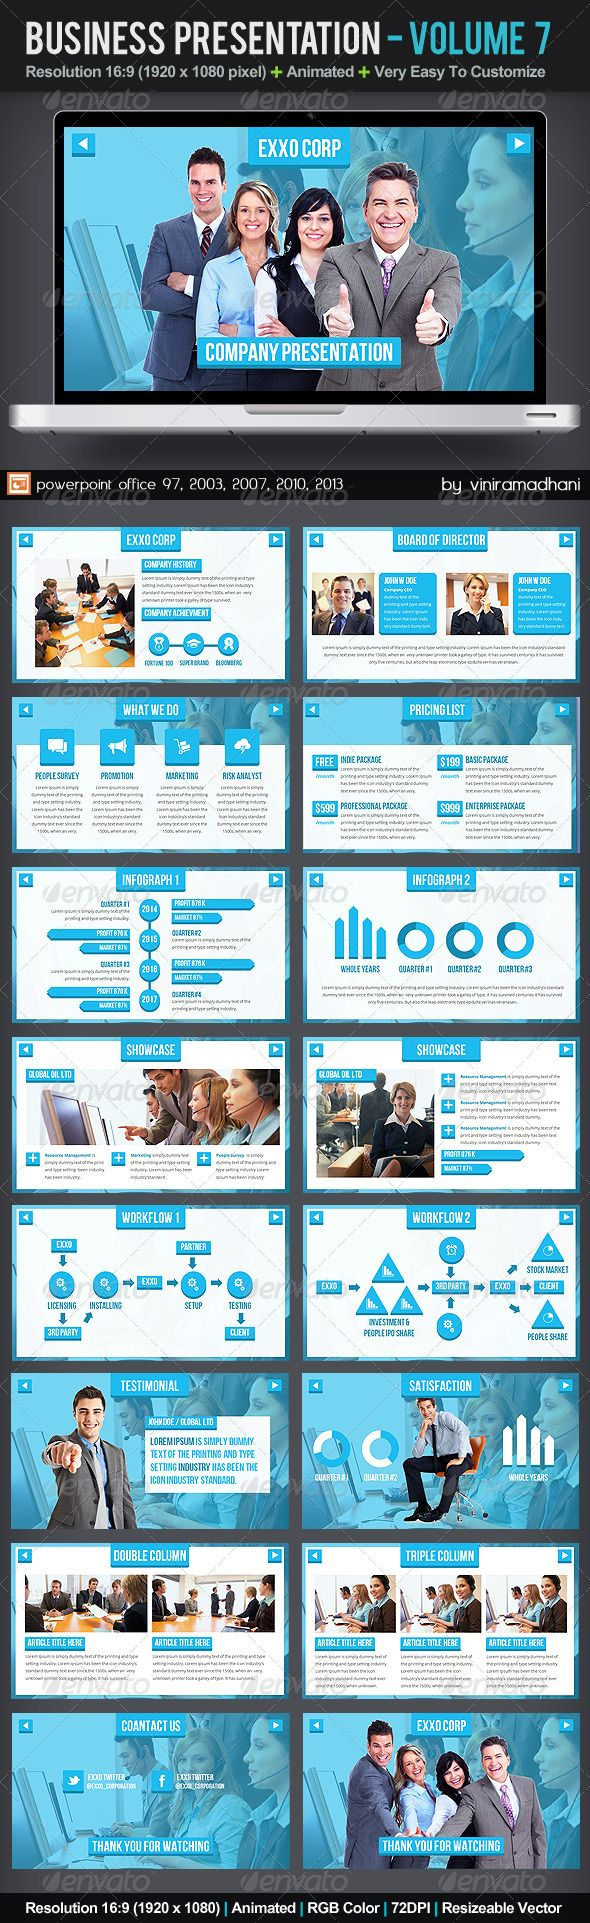 Business Presentation | Volume 7  #GraphicRiver         Specs  :  	 microsoft office powerpoint 97, 2003, 2007, 2010, 2013